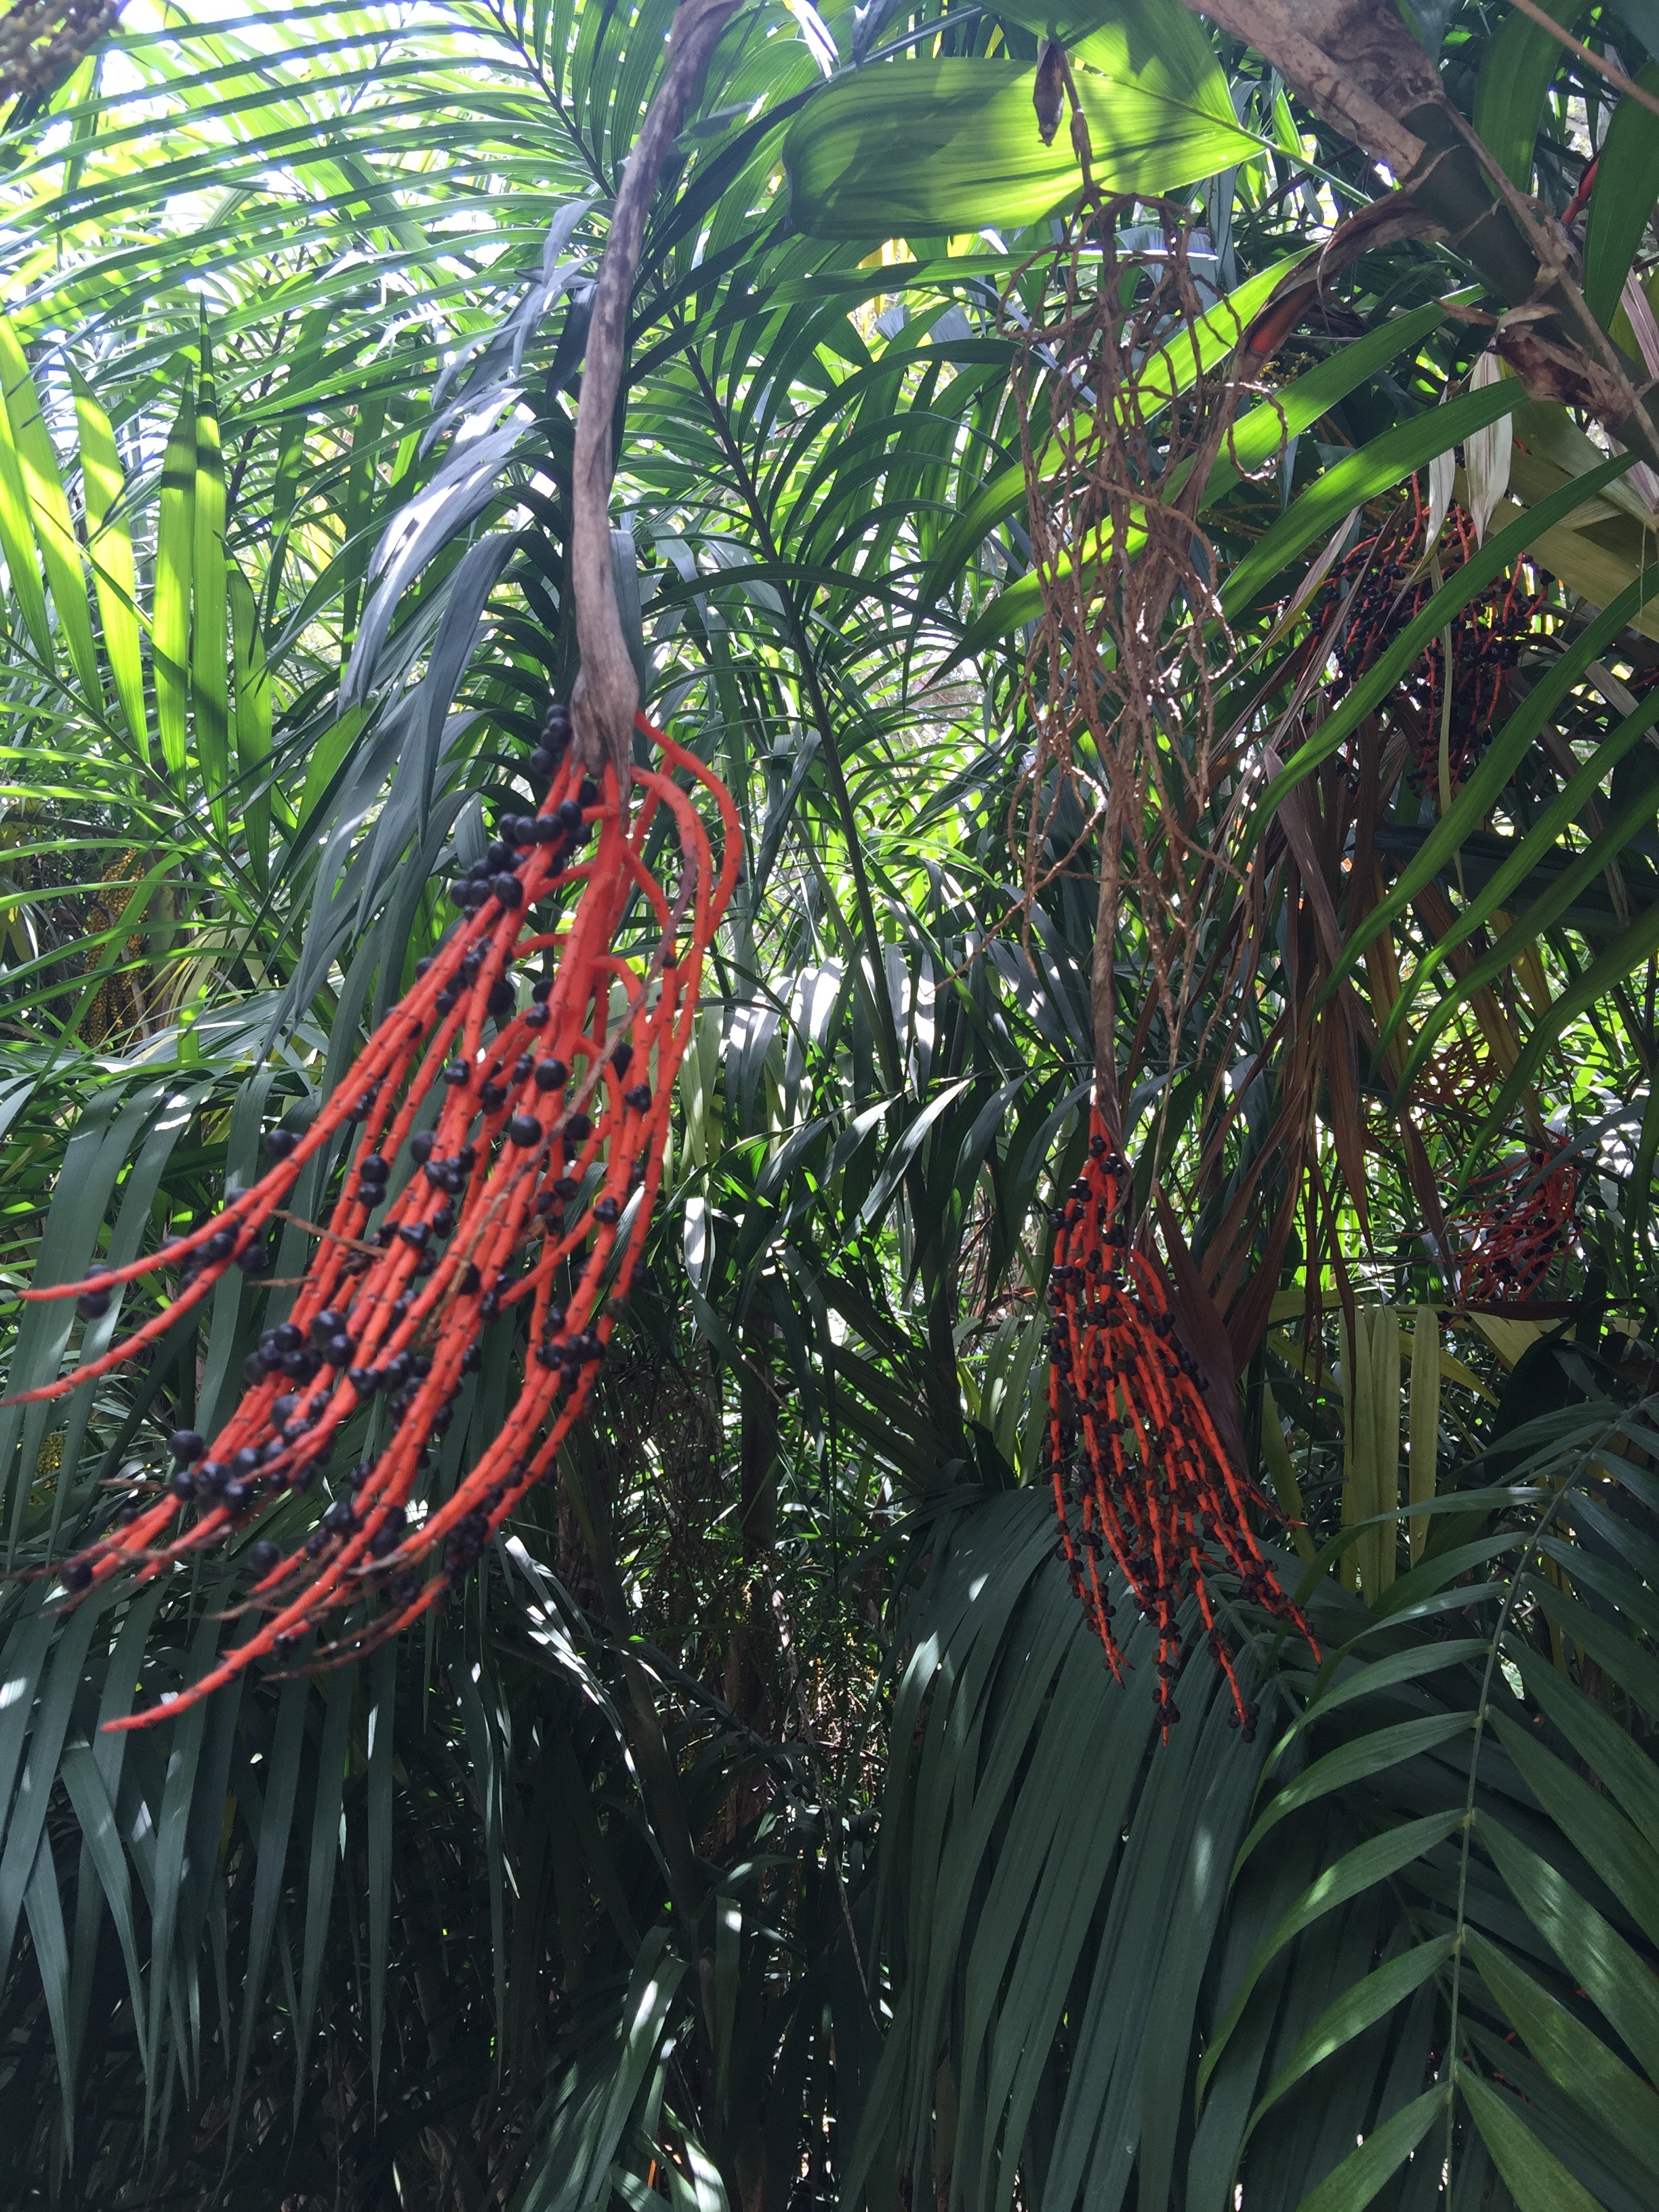 One of the to-be bronzed plants from The Lotusland Garden